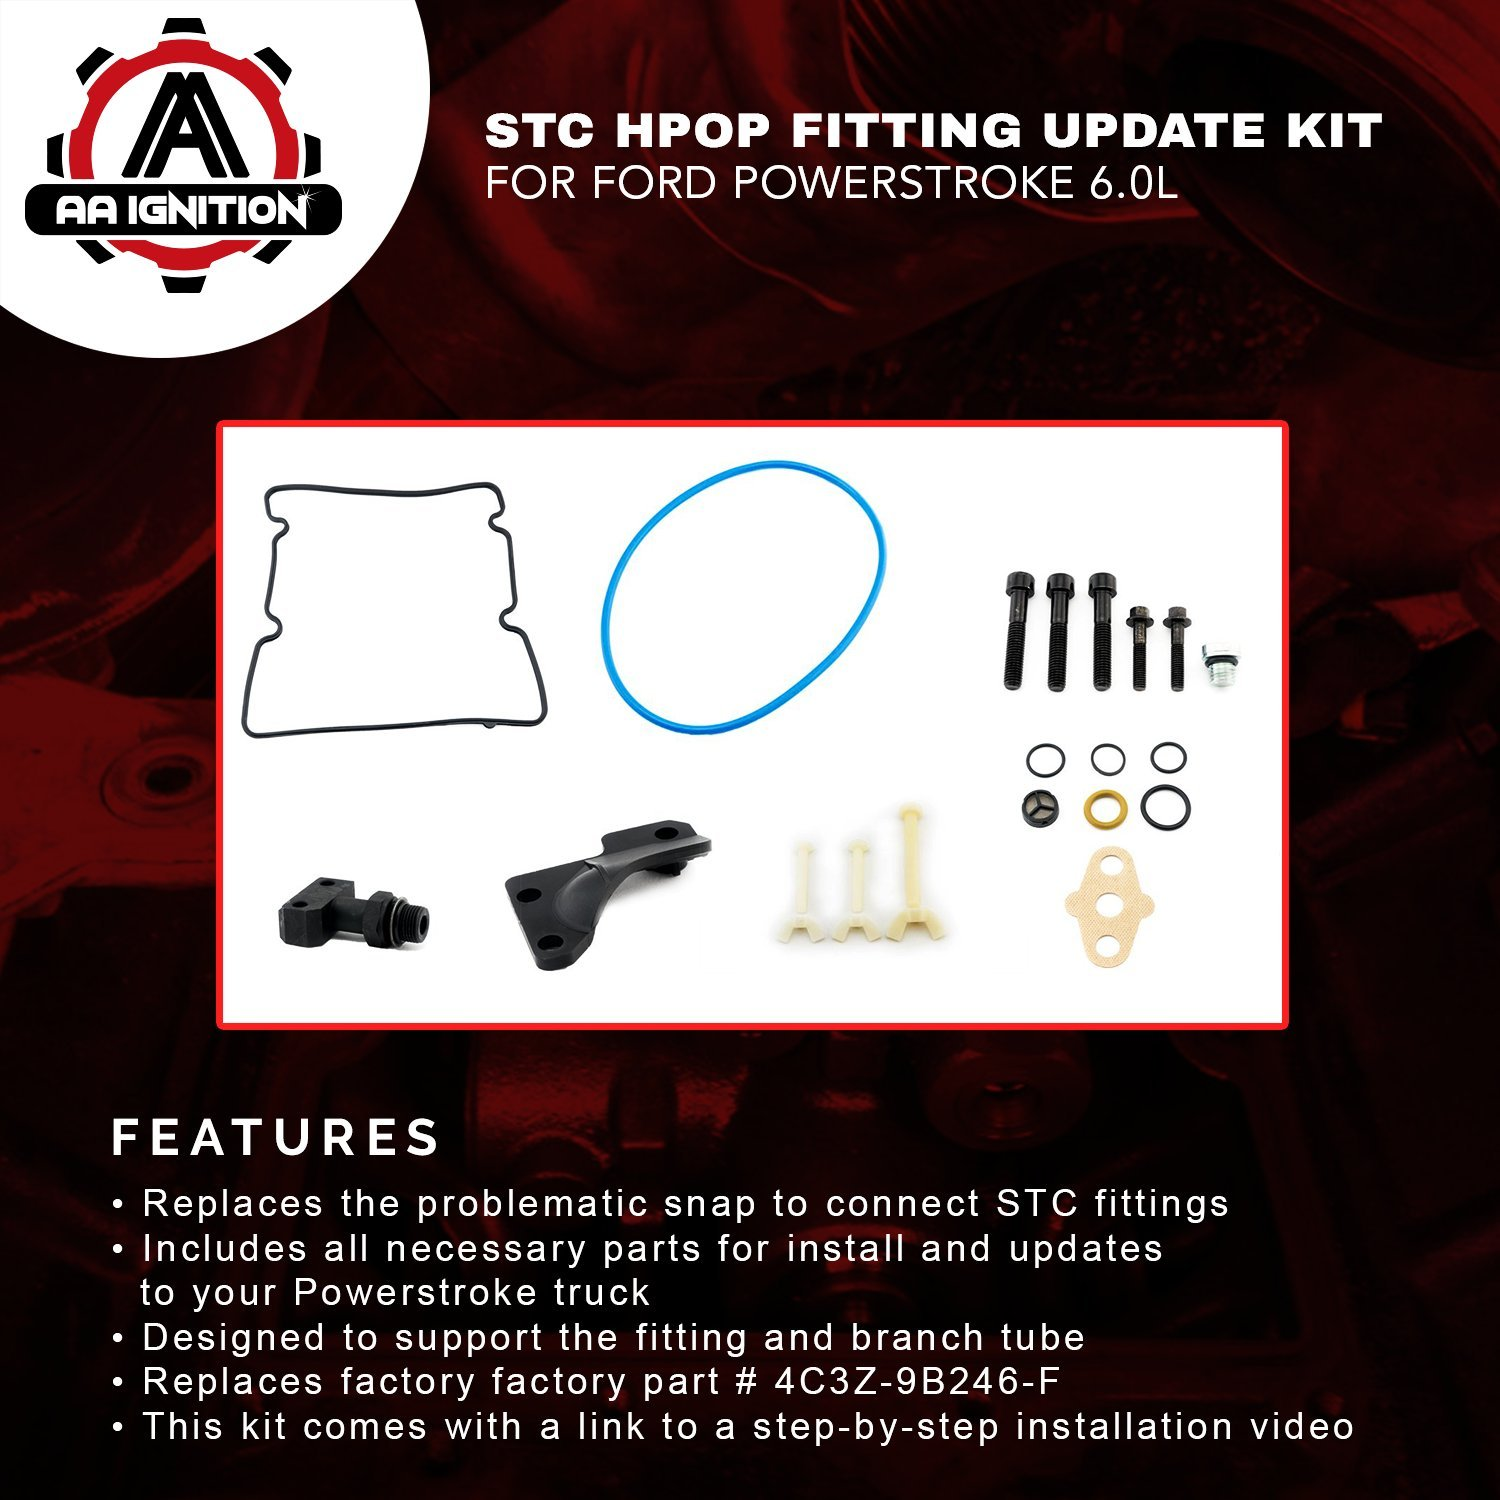 6 0l Powerstroke Stc Hpop Fitting Update Kit For Ford F250 F350